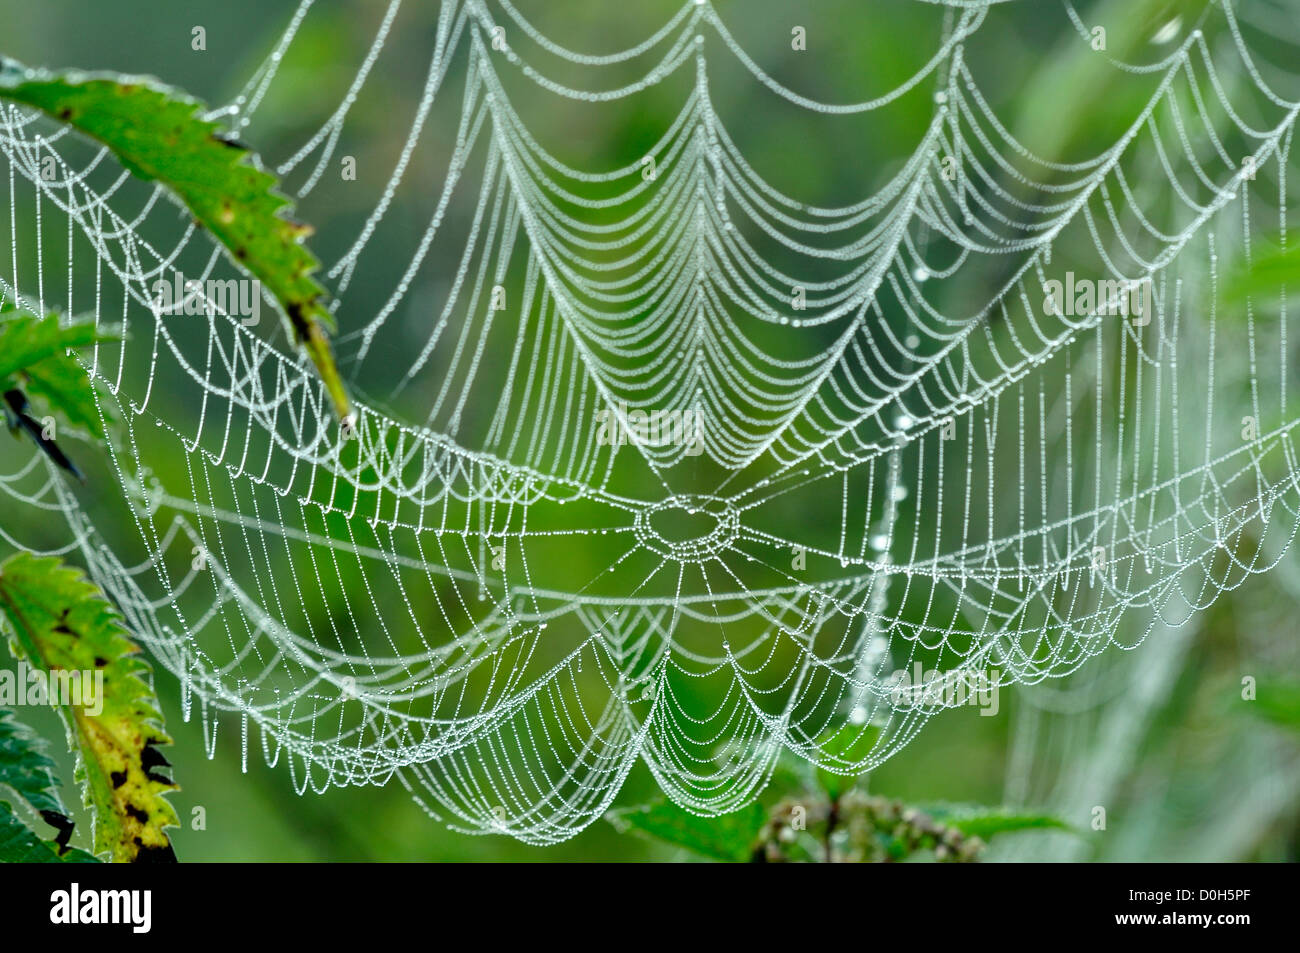 Orb web covered in dew at dawn. - Stock Image